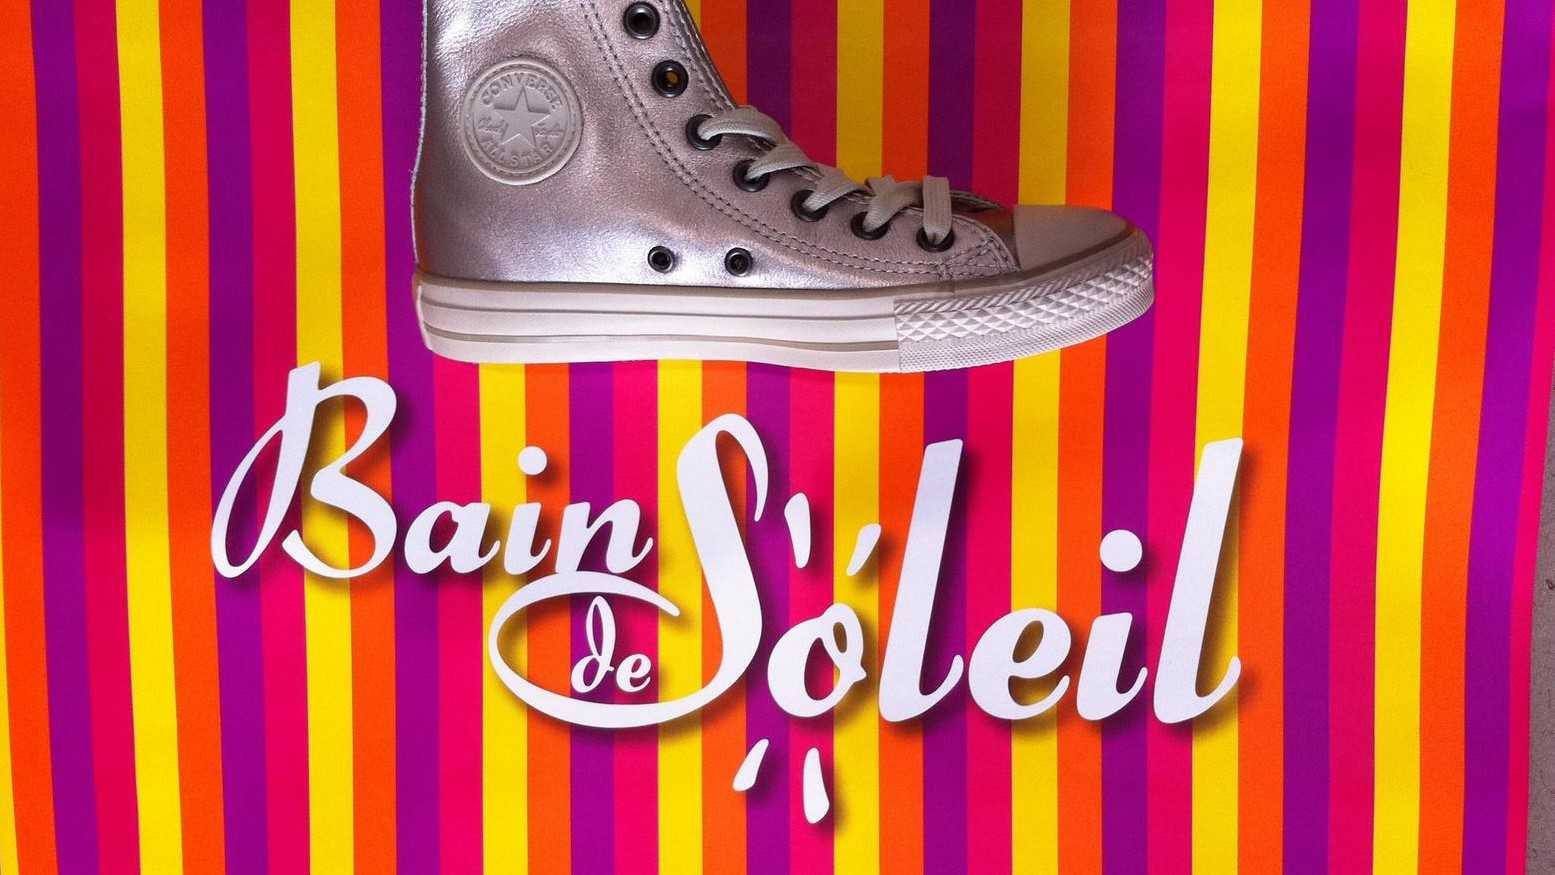 bain de soleil chaussures nice nice city life